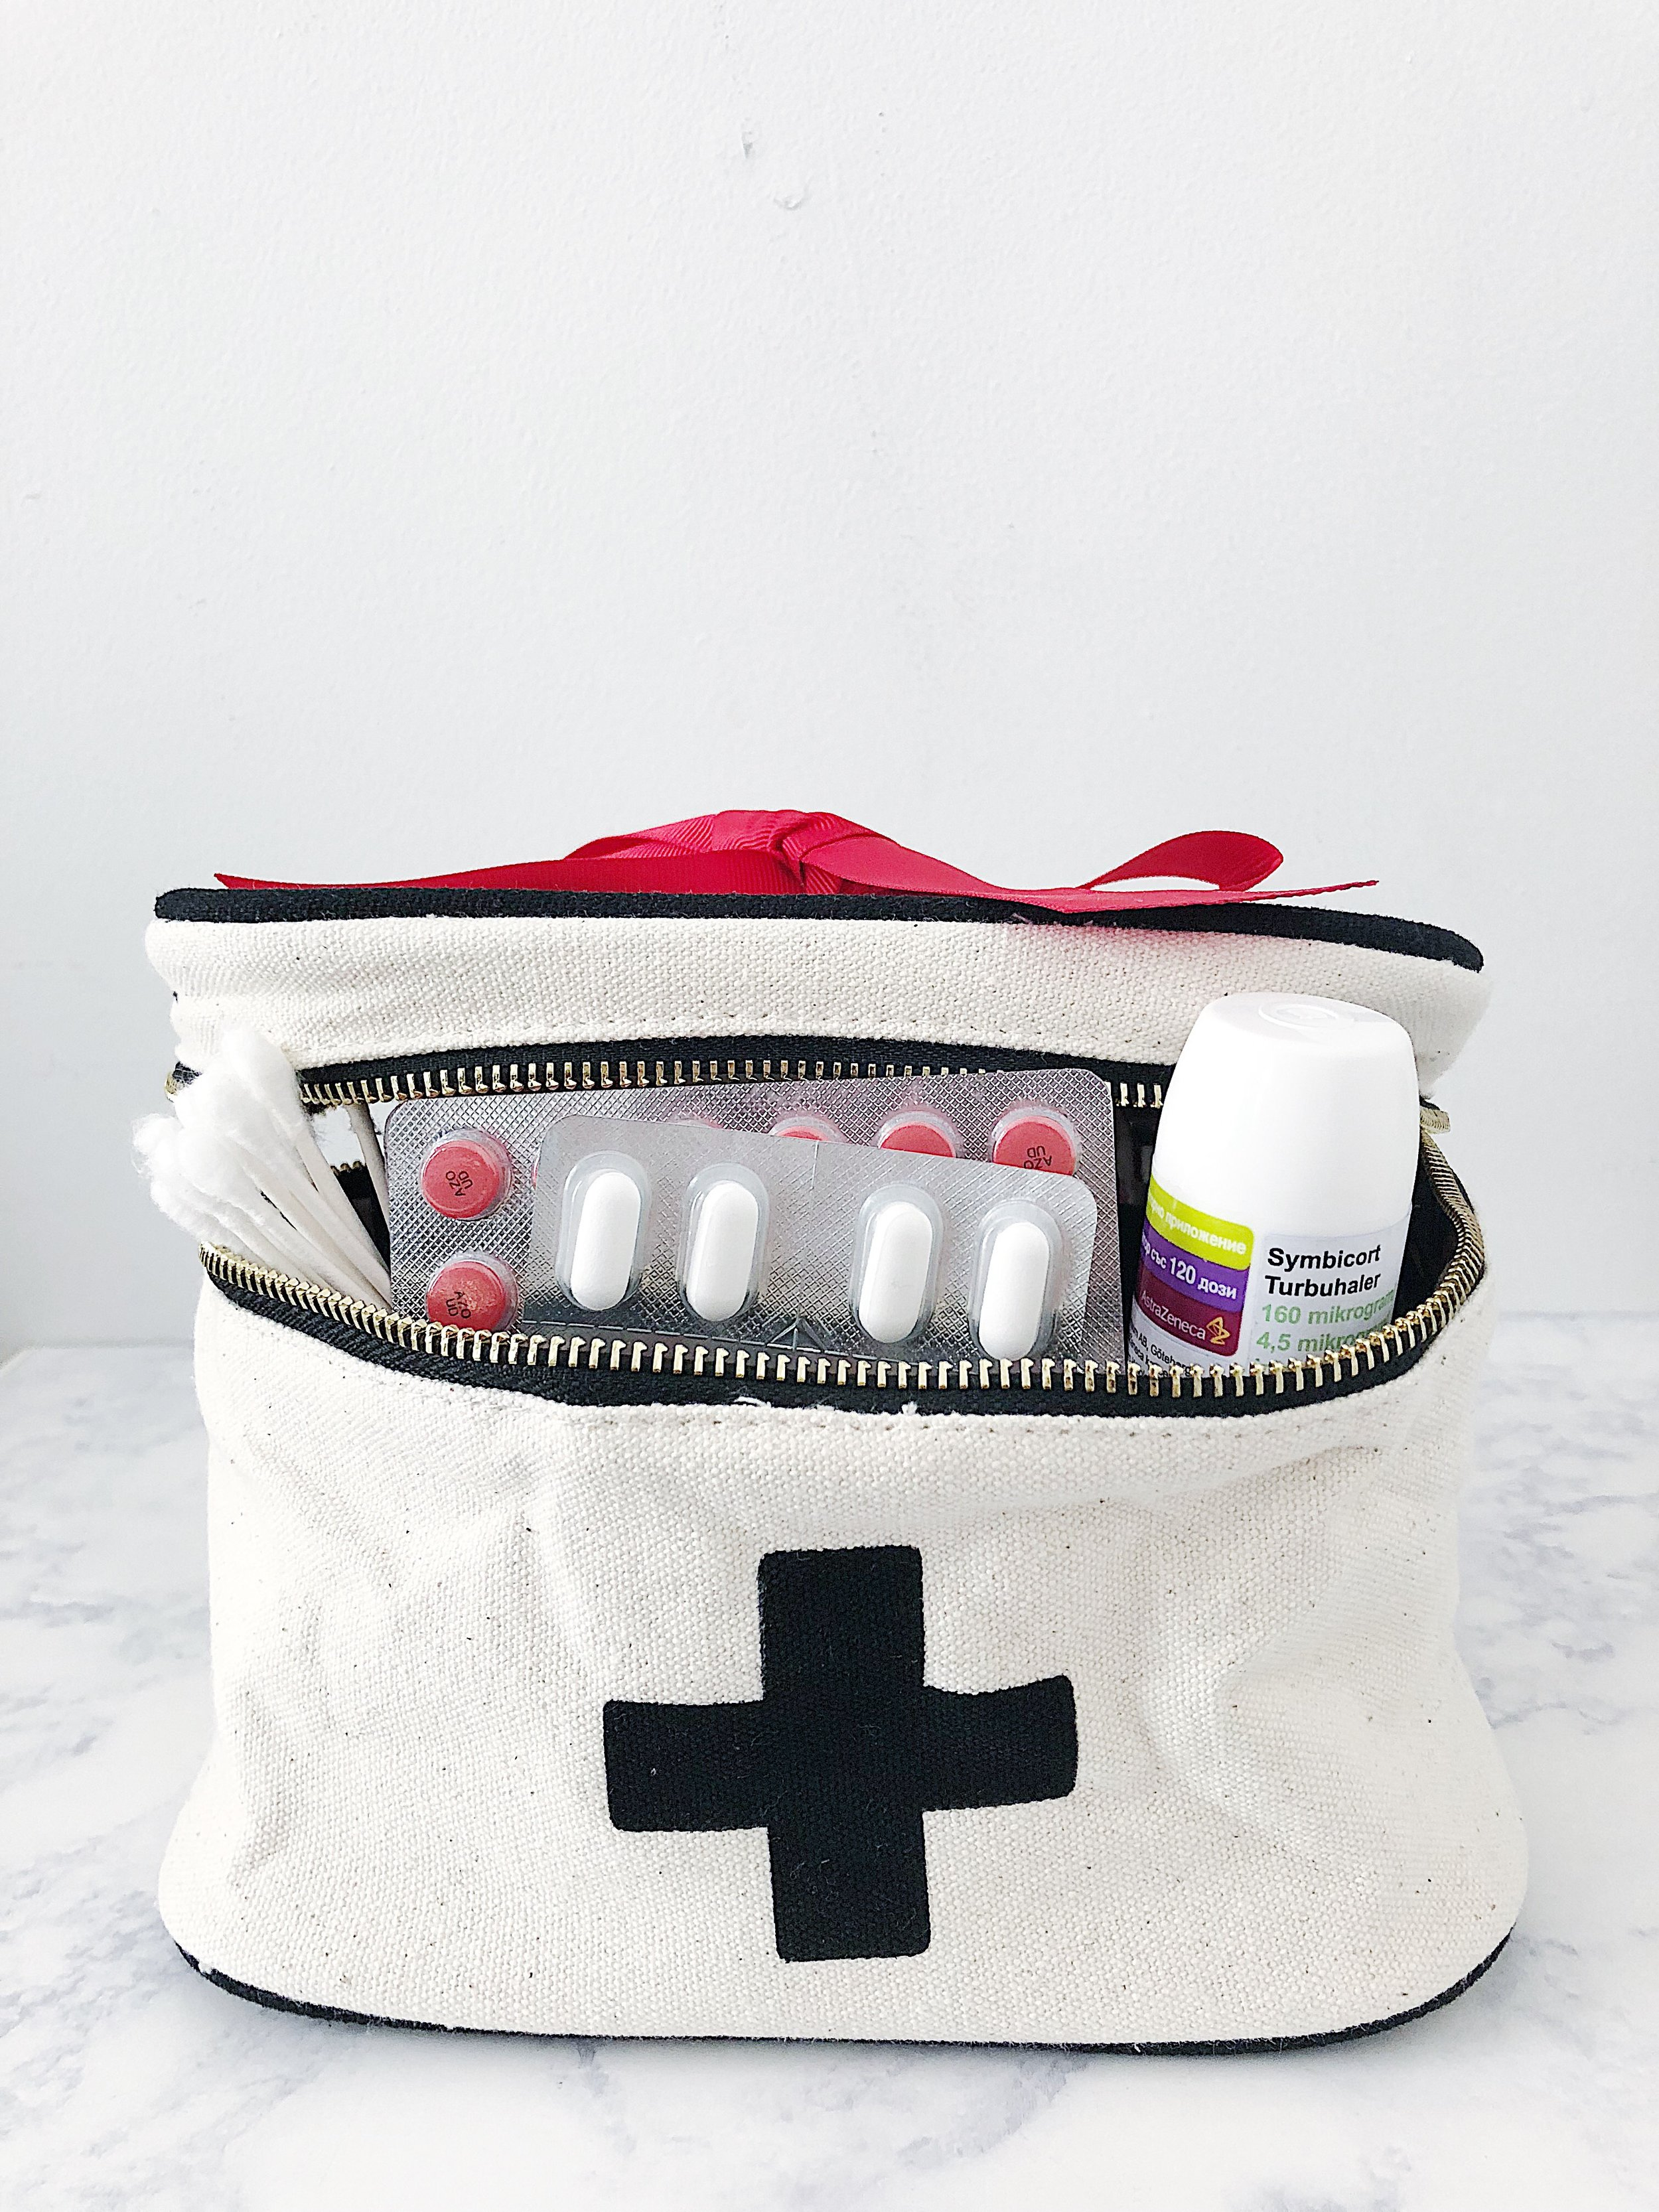 - Prepare a health kit! We never now when we need it. Pack a few cotton sticks, band aids, aleo vera, and pain relief so you are ready when you need it.